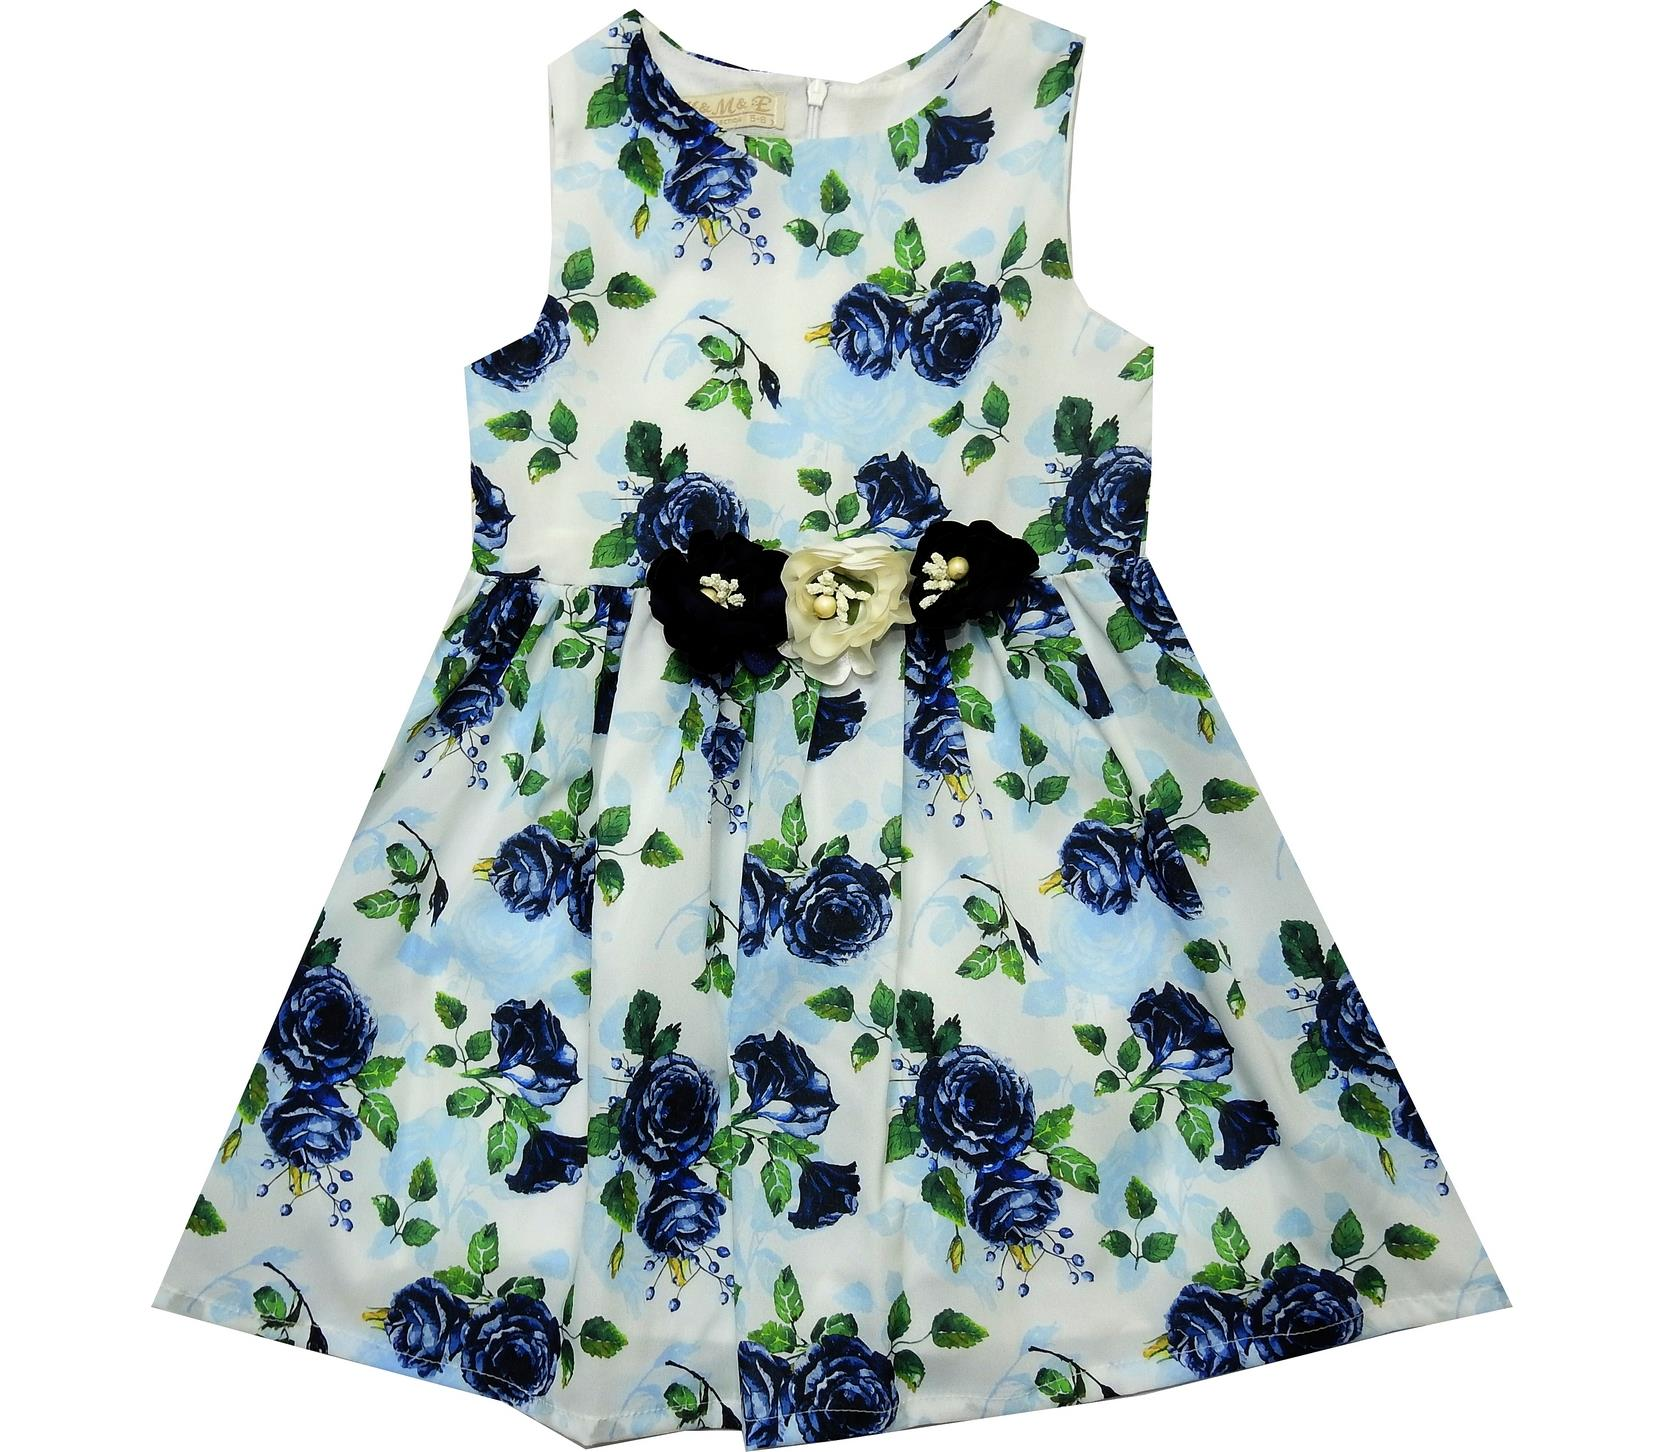 FLOWERY EMBROIDERELY DESIGNED DRESS